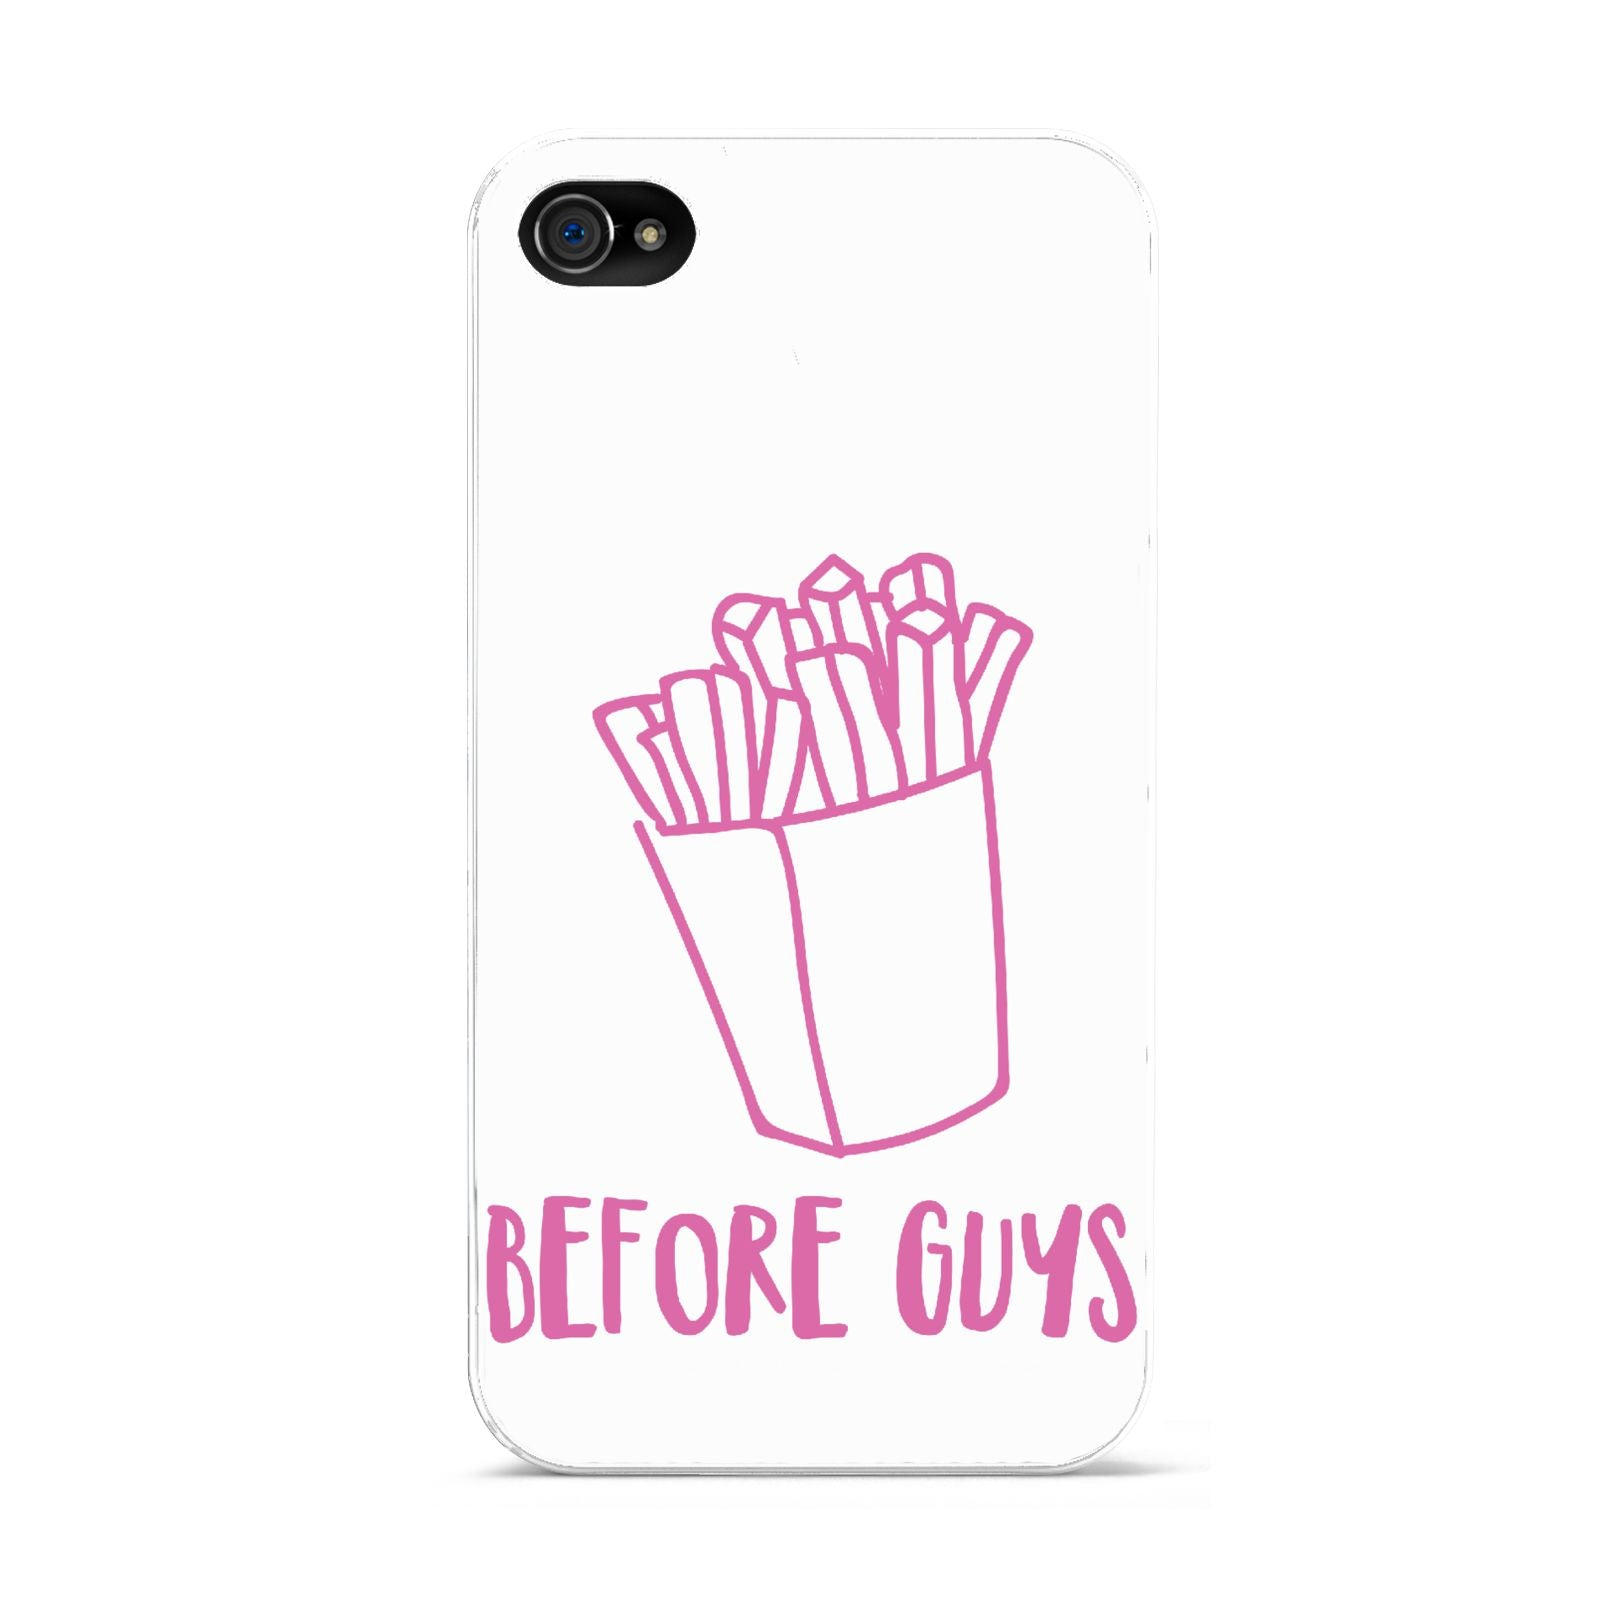 Valentines Fries Before Guys Apple iPhone 4s Case